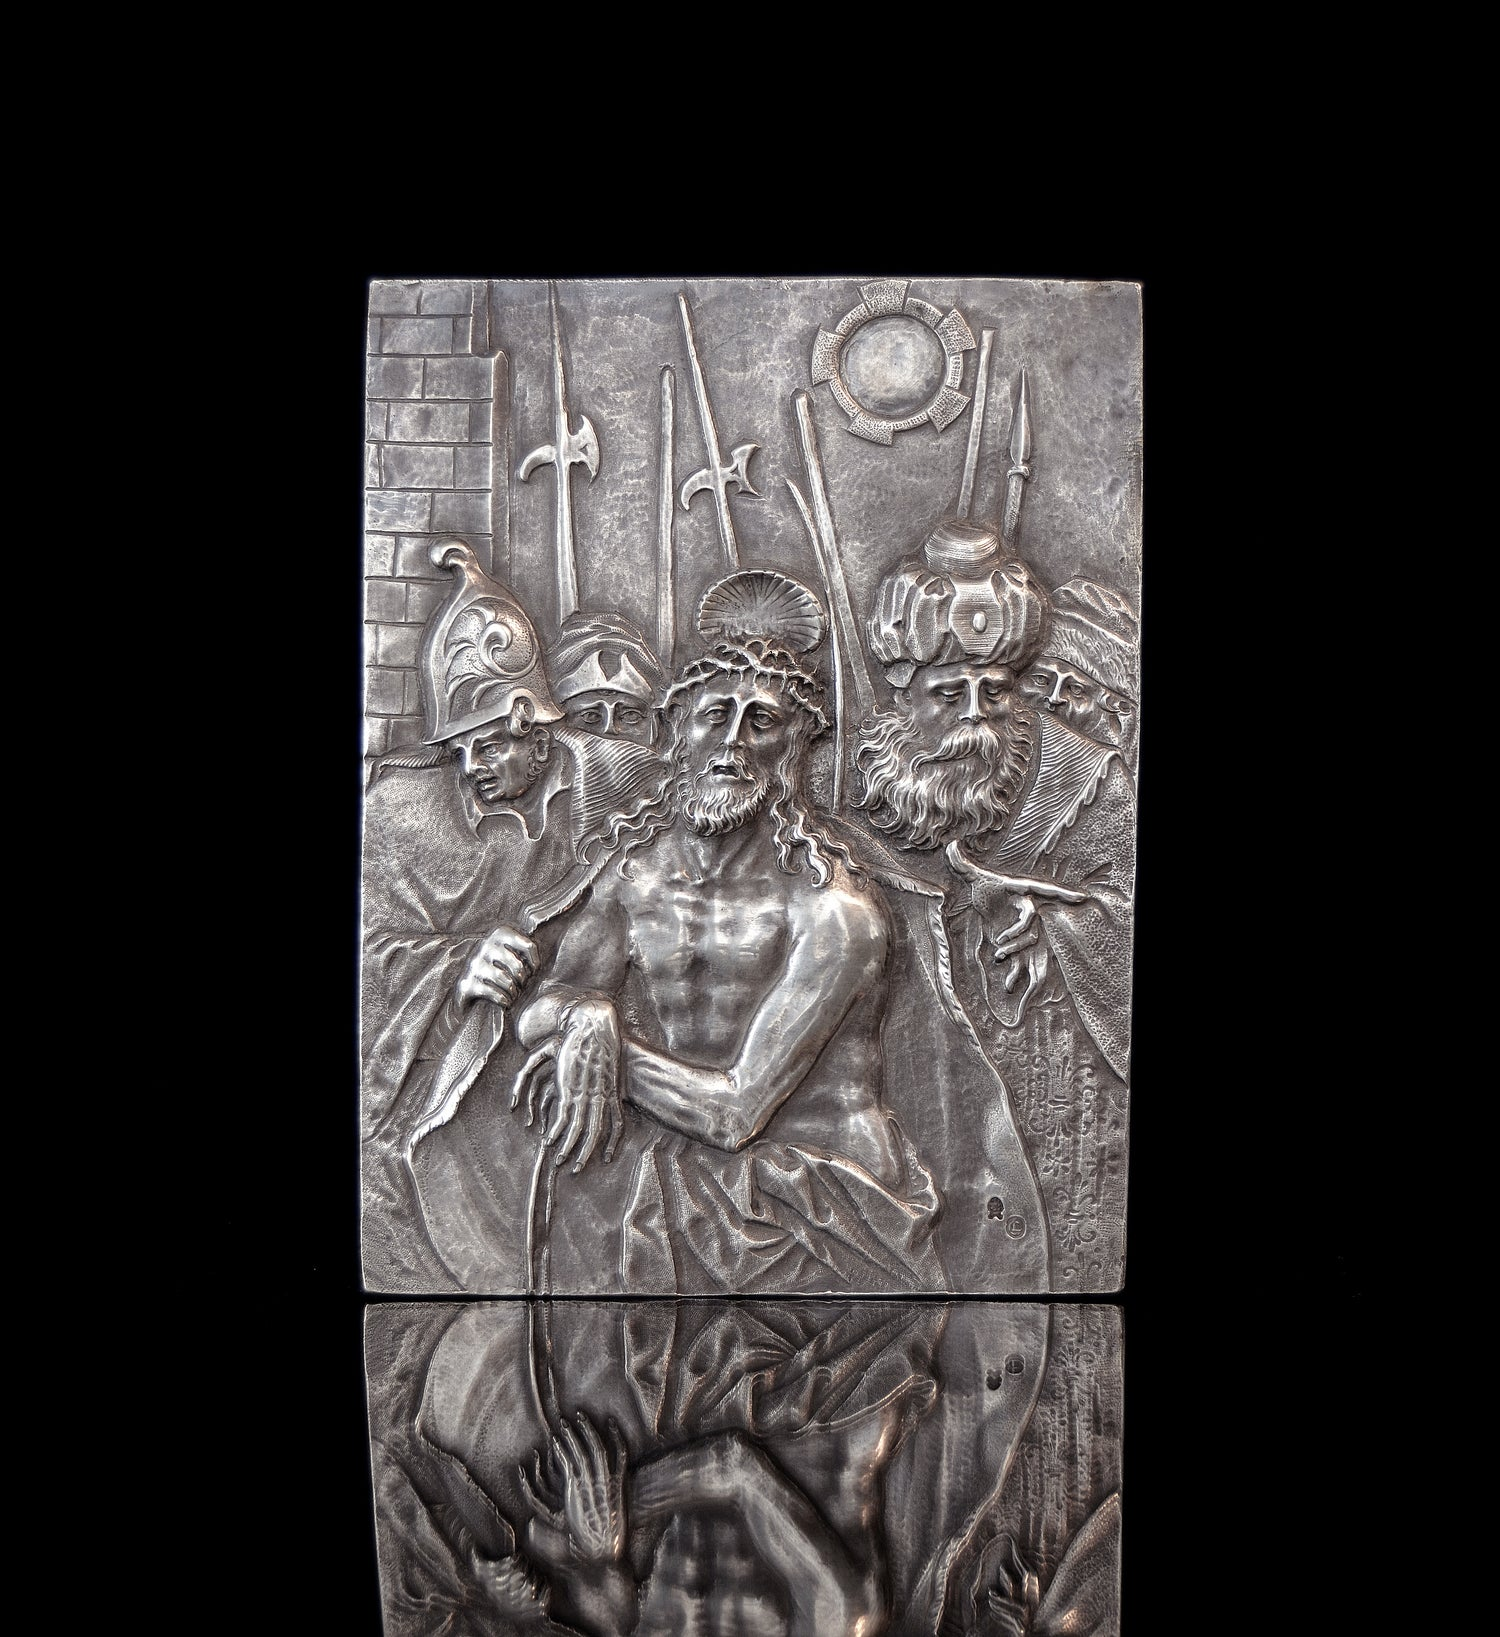 Image of Silver relief depicting the Presentation of Christ by Christoph Lencker